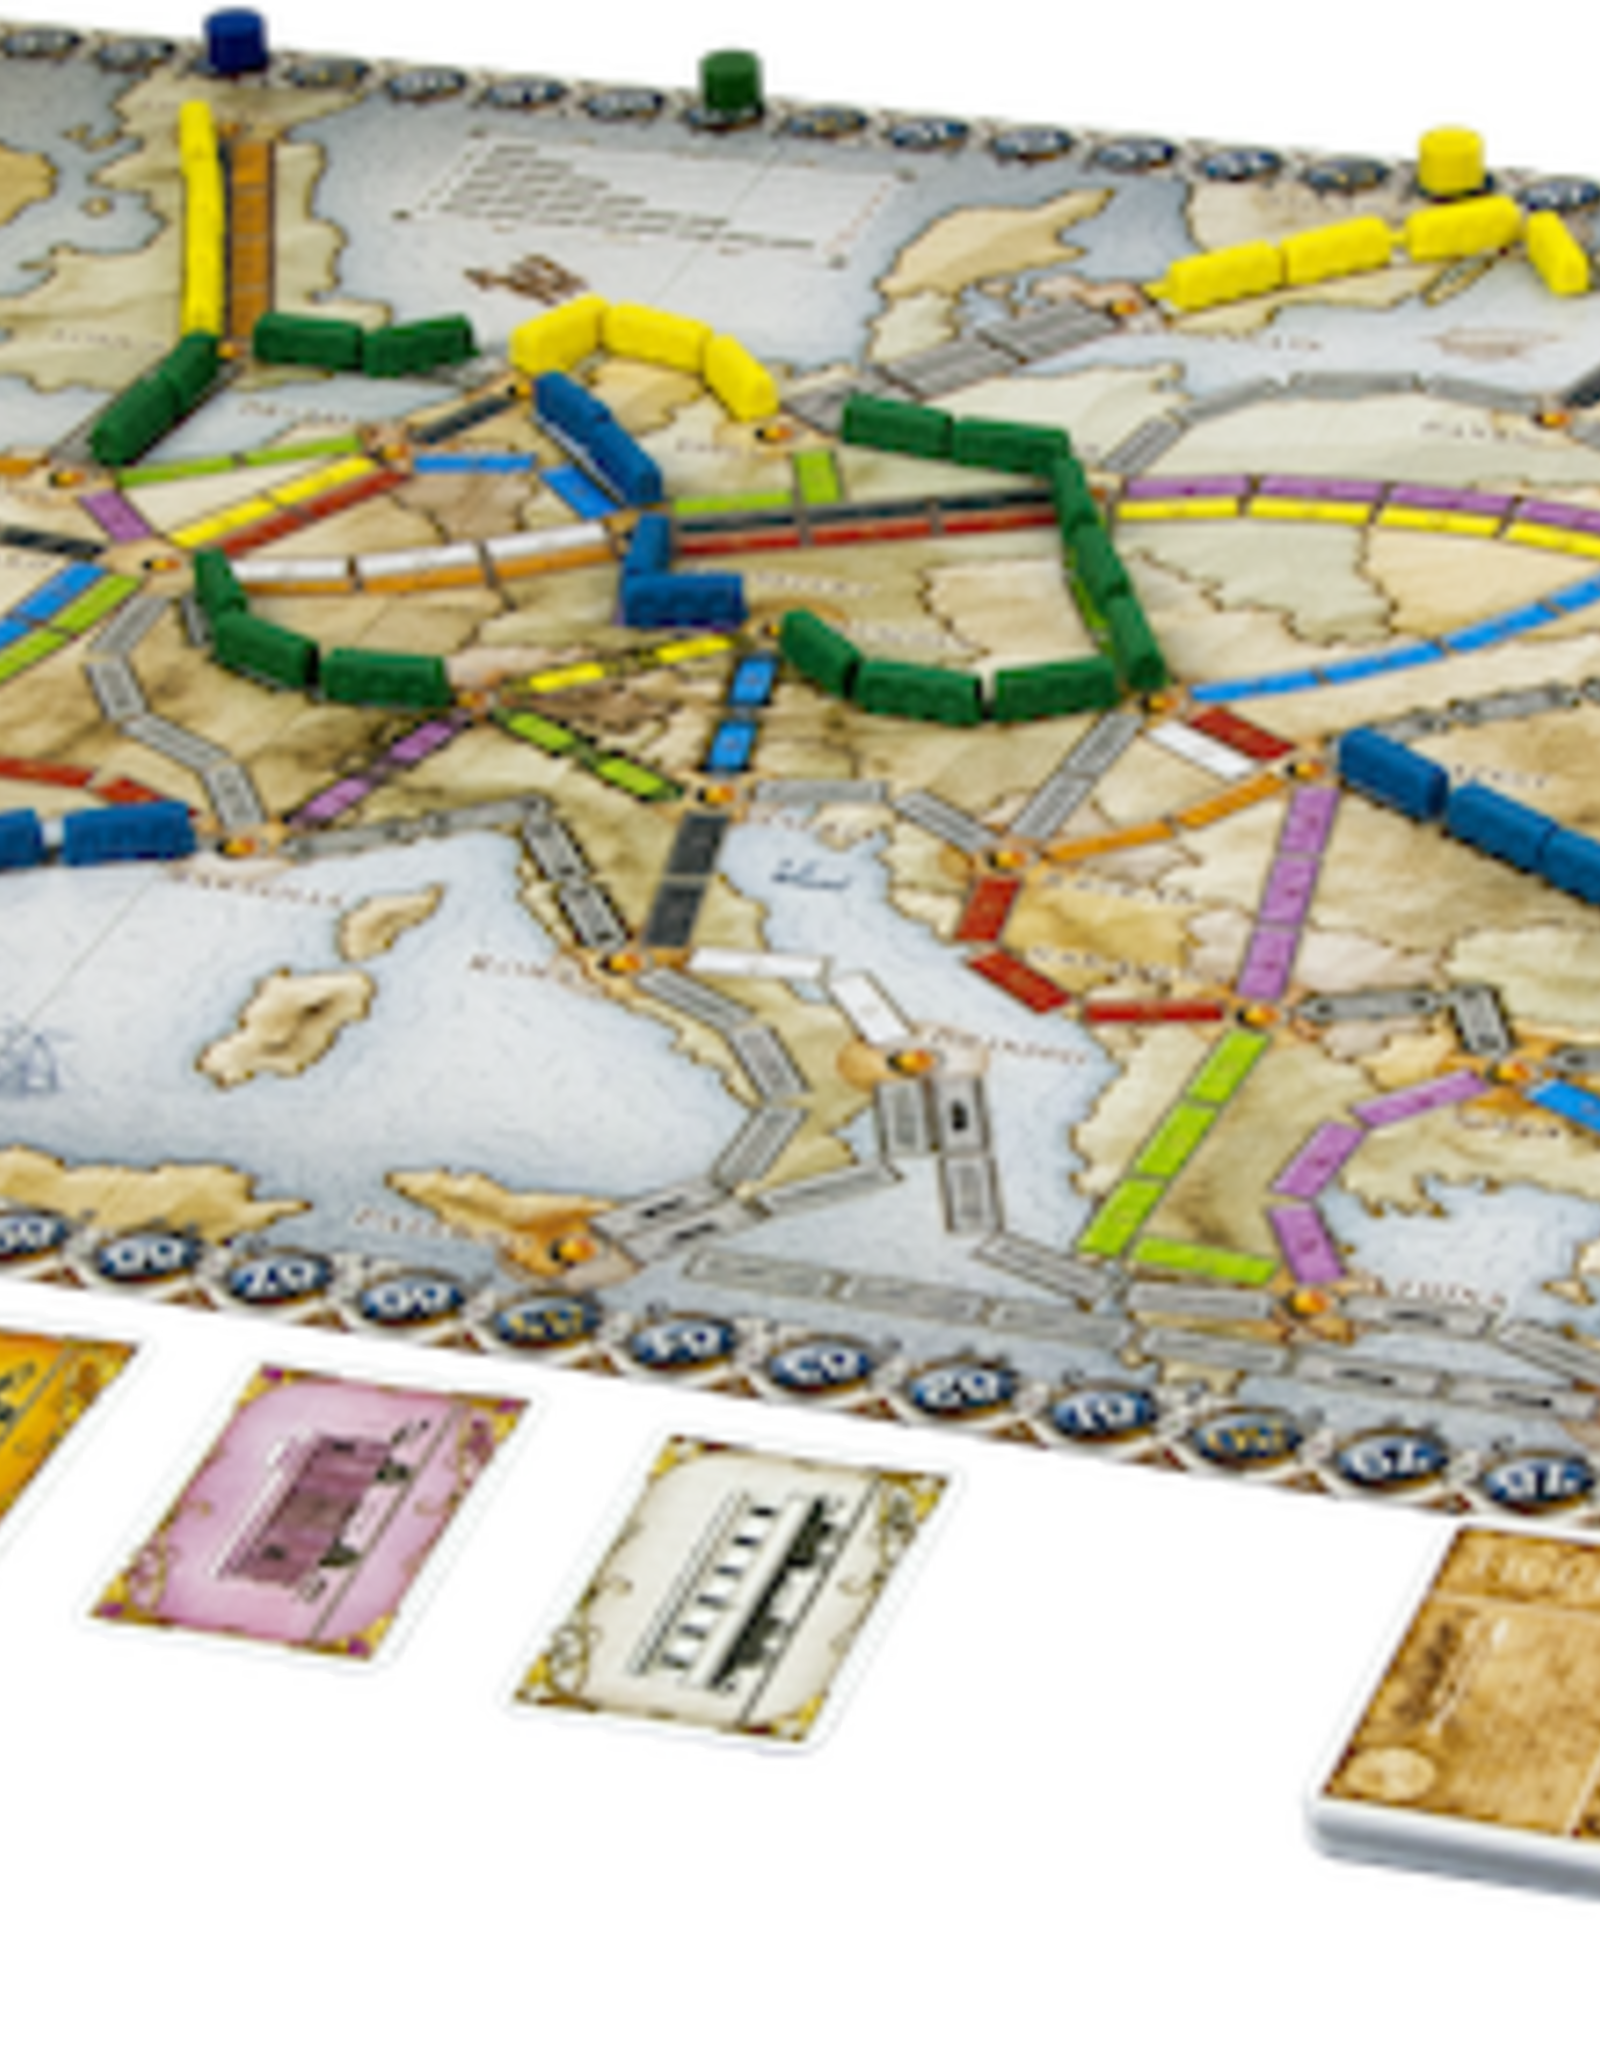 Days of Wonder Ticket to Ride: Europe